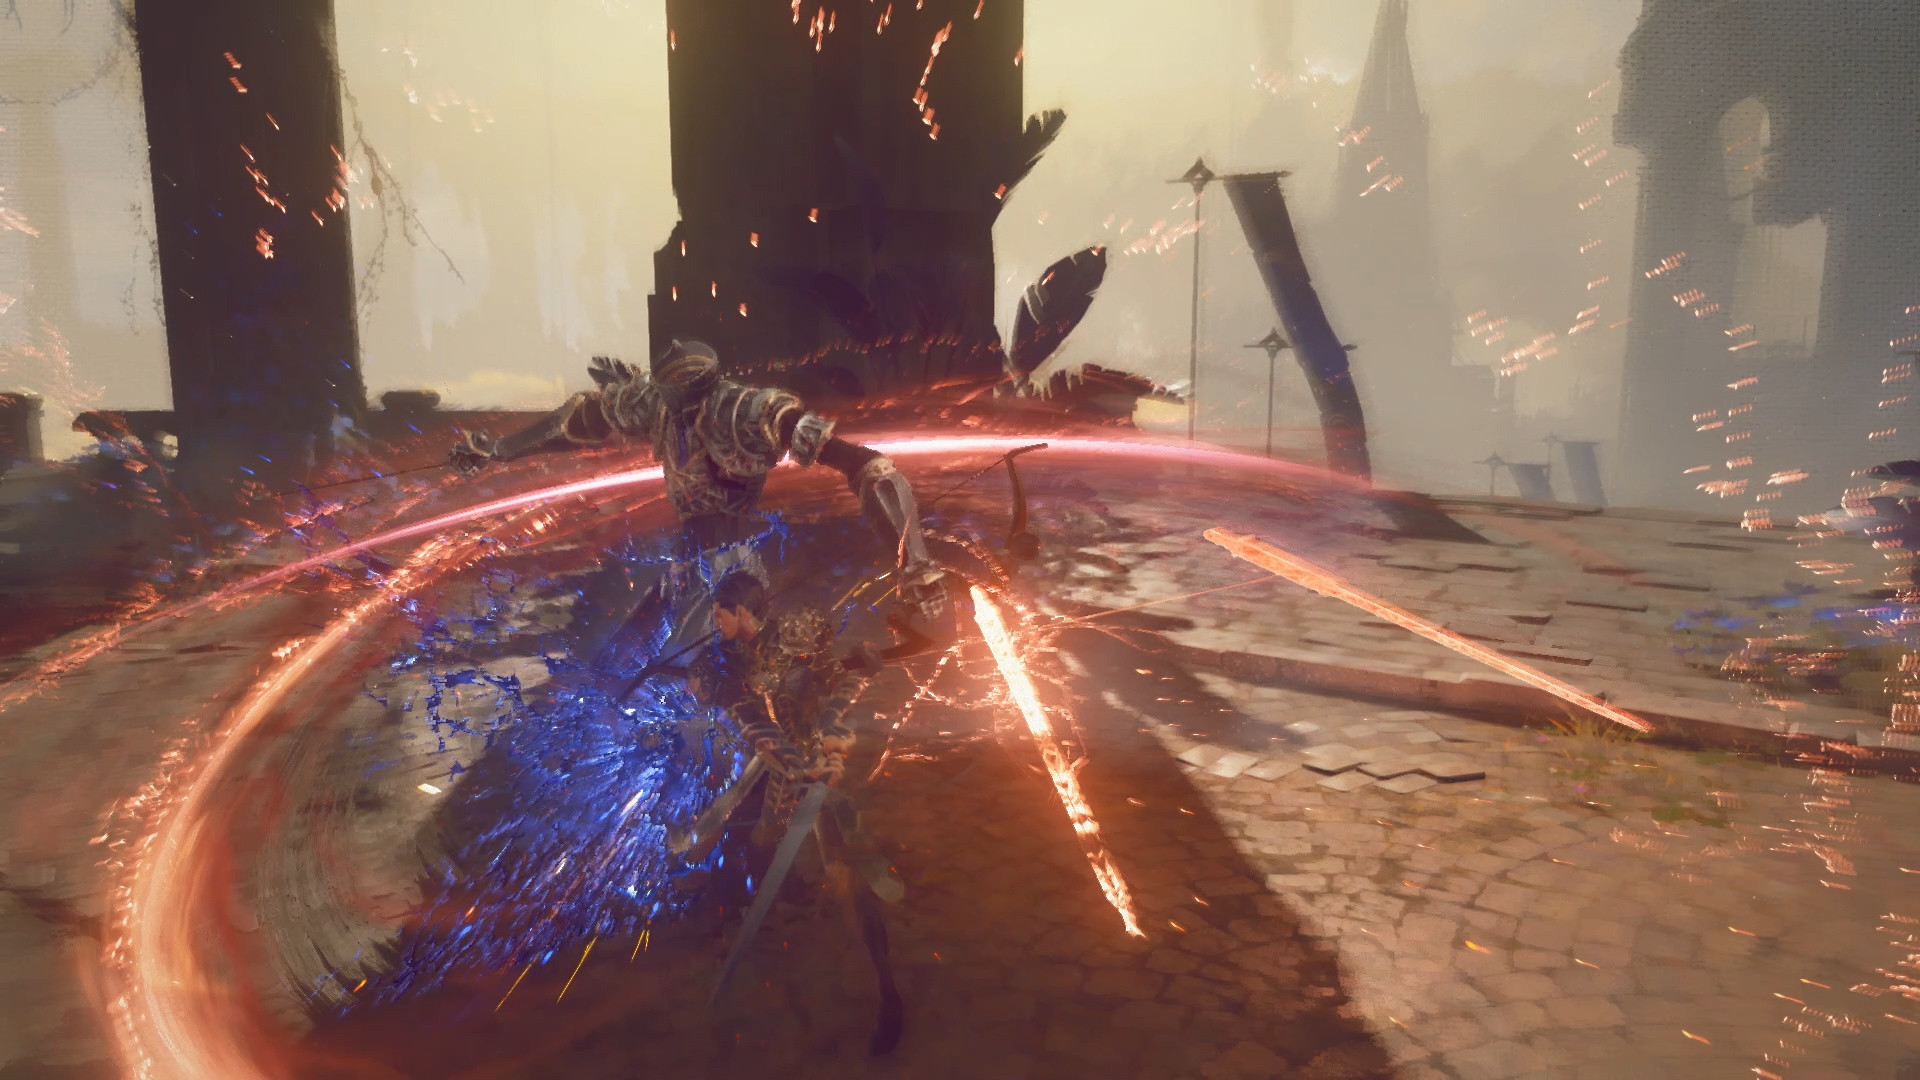 PlatinumGames' Babylon's Fall Gameplay Shown, More to Be Revealed Next Summer